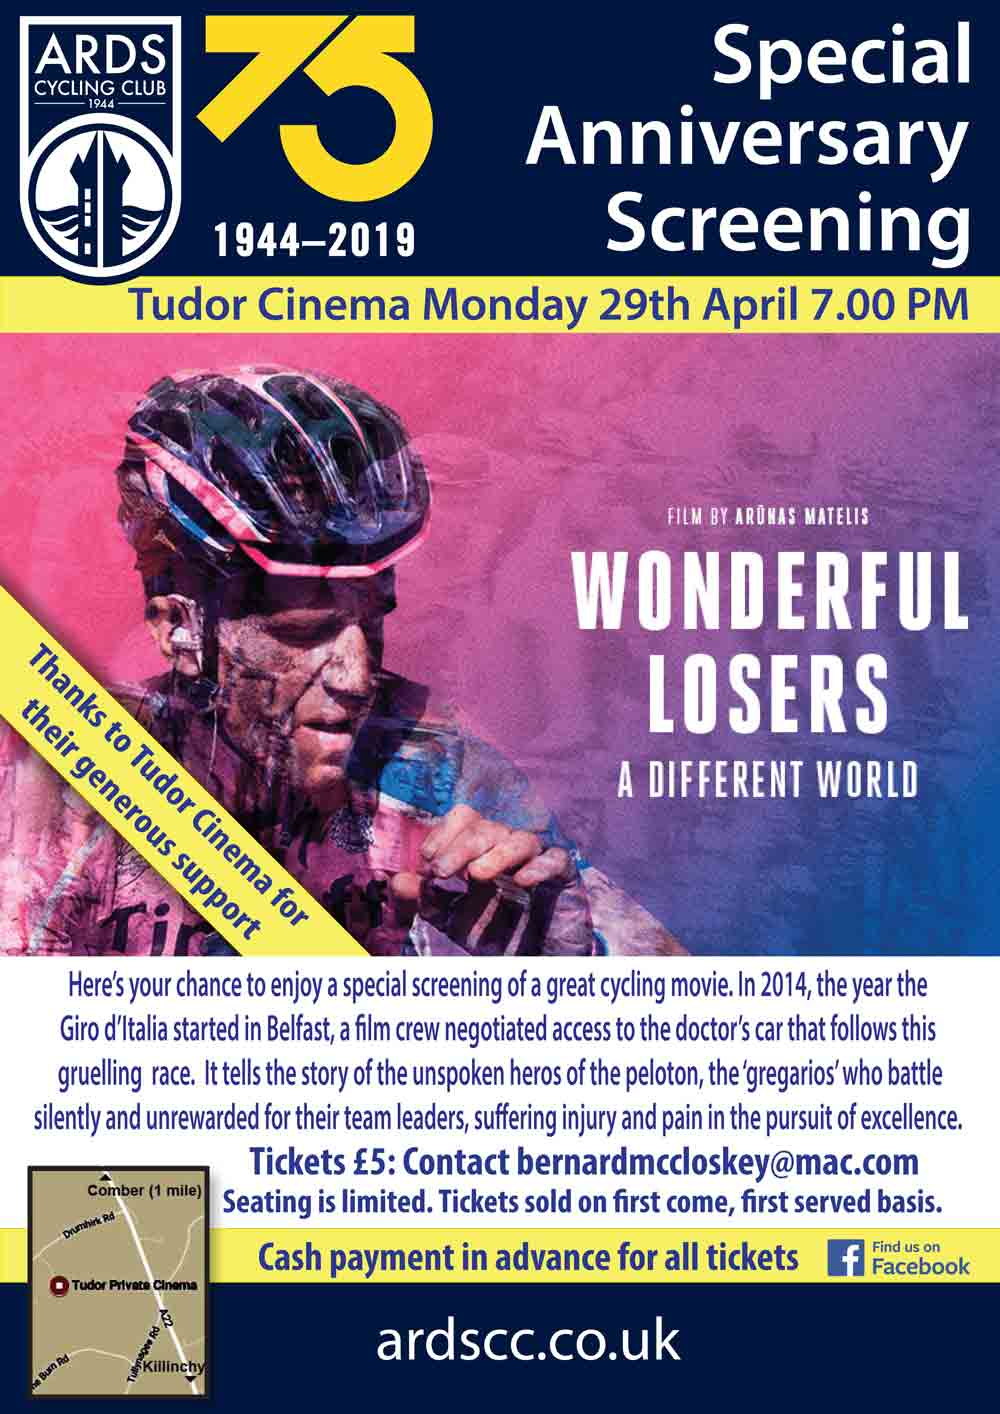 ardscc_wonderful_losers_flyer_02